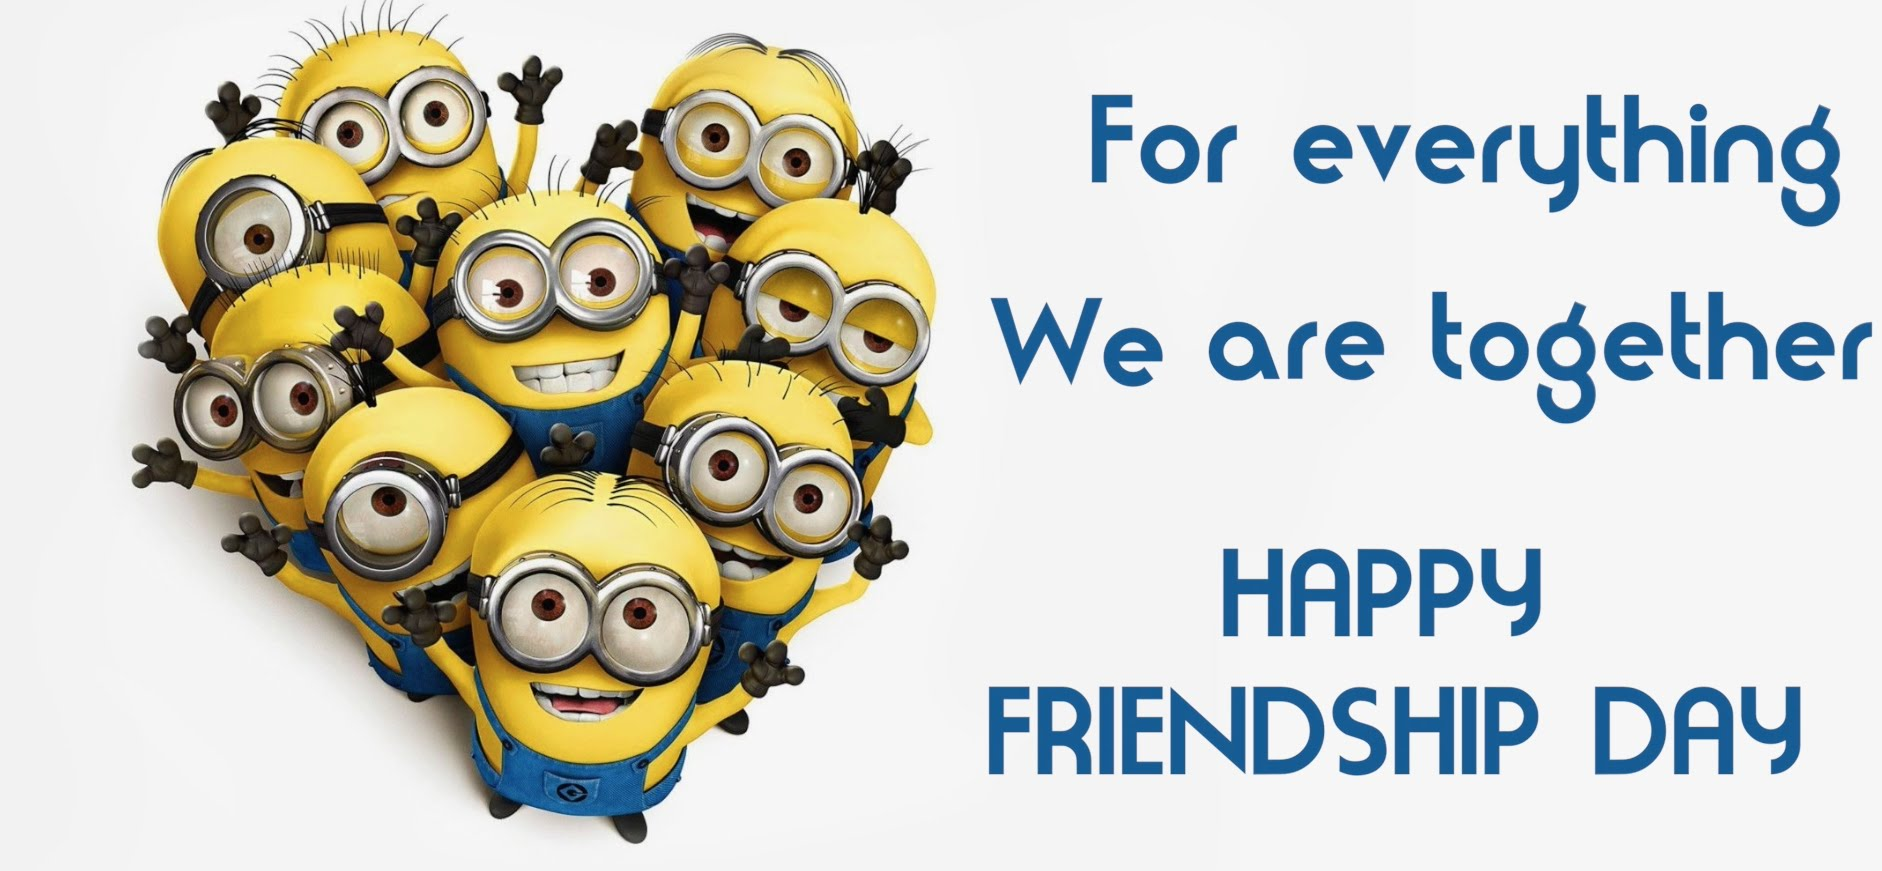 Happy Friendship Day 2018 Images Quotes Wishes Greetings